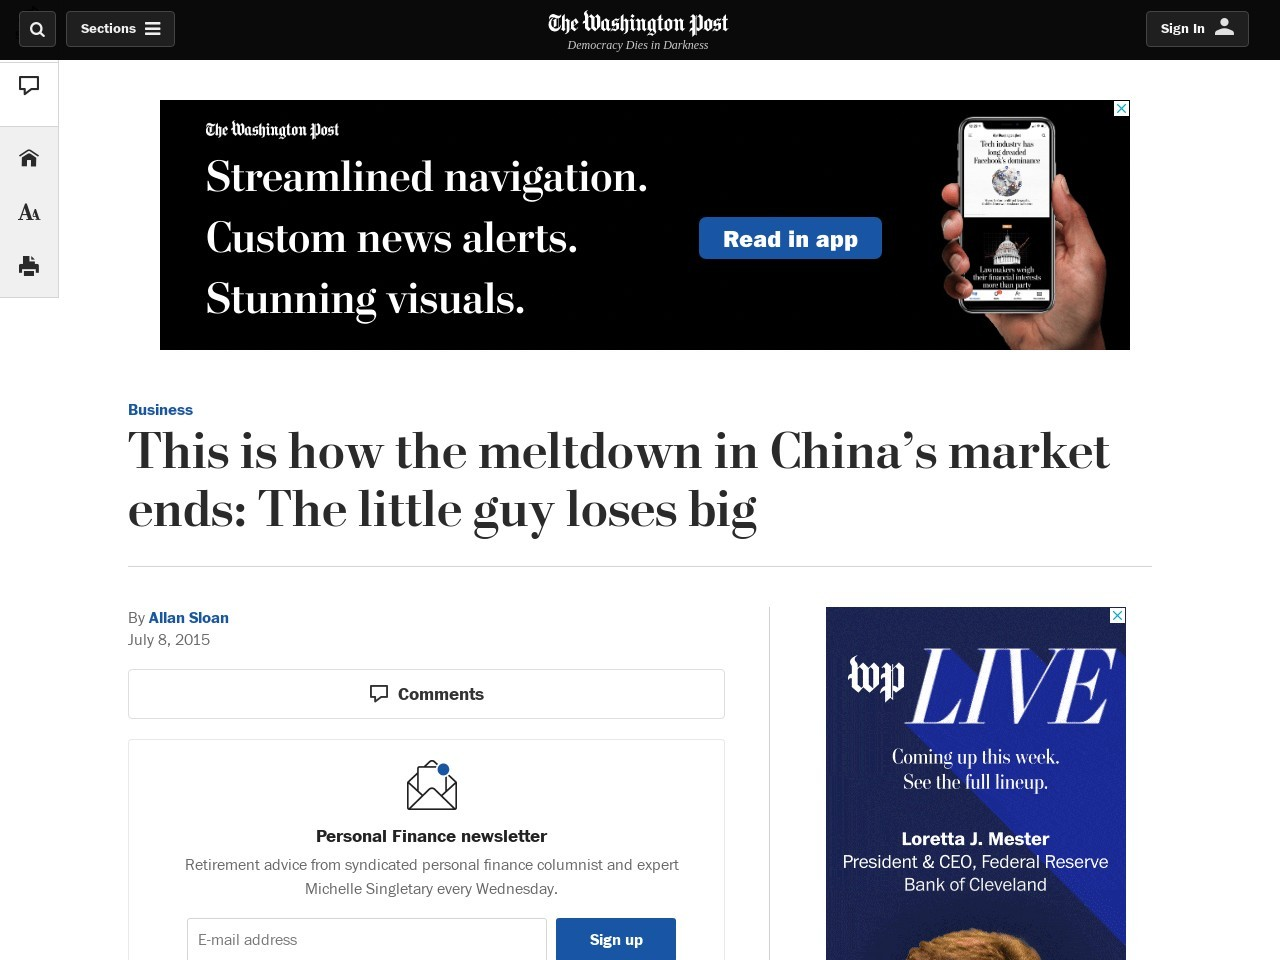 This is how the meltdown in China's market ends: The little guy loses big